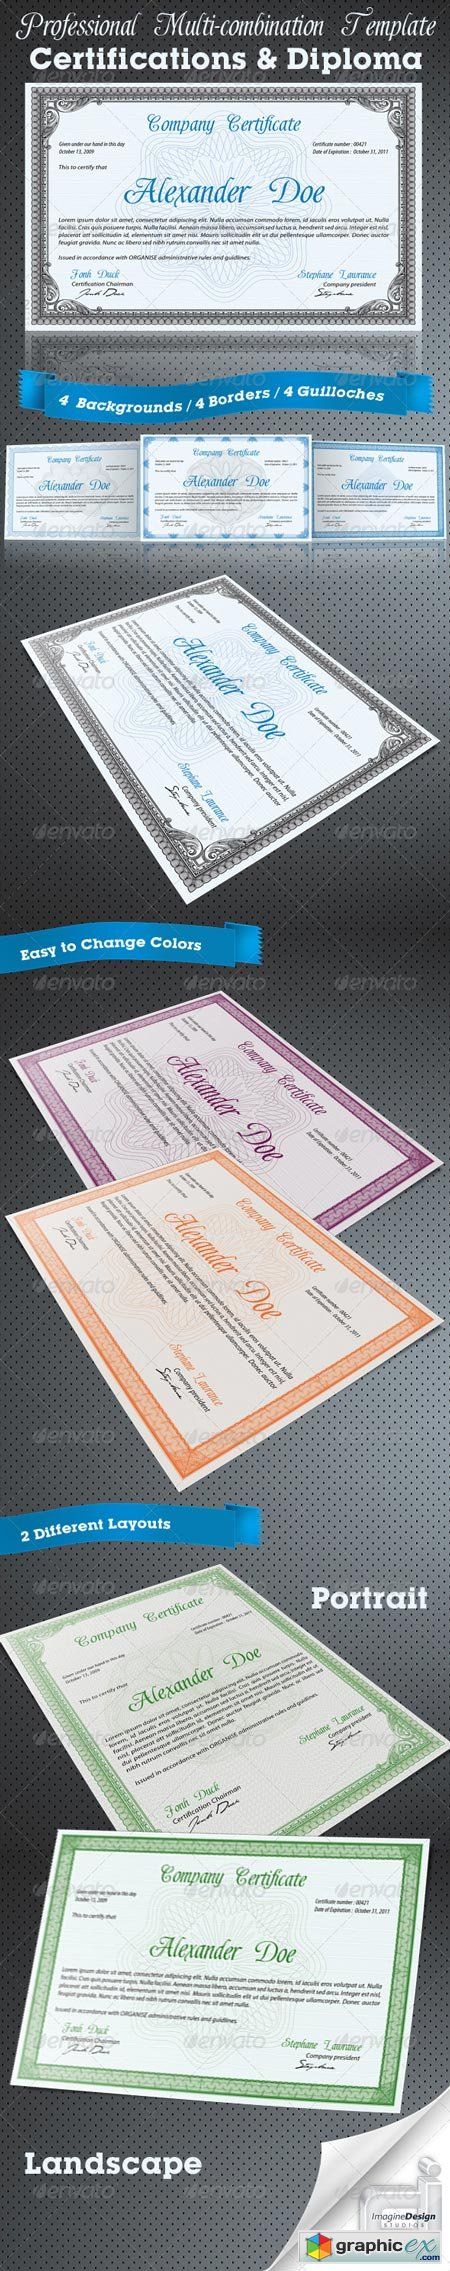 Professional Certificate or Diploma Templates 376224